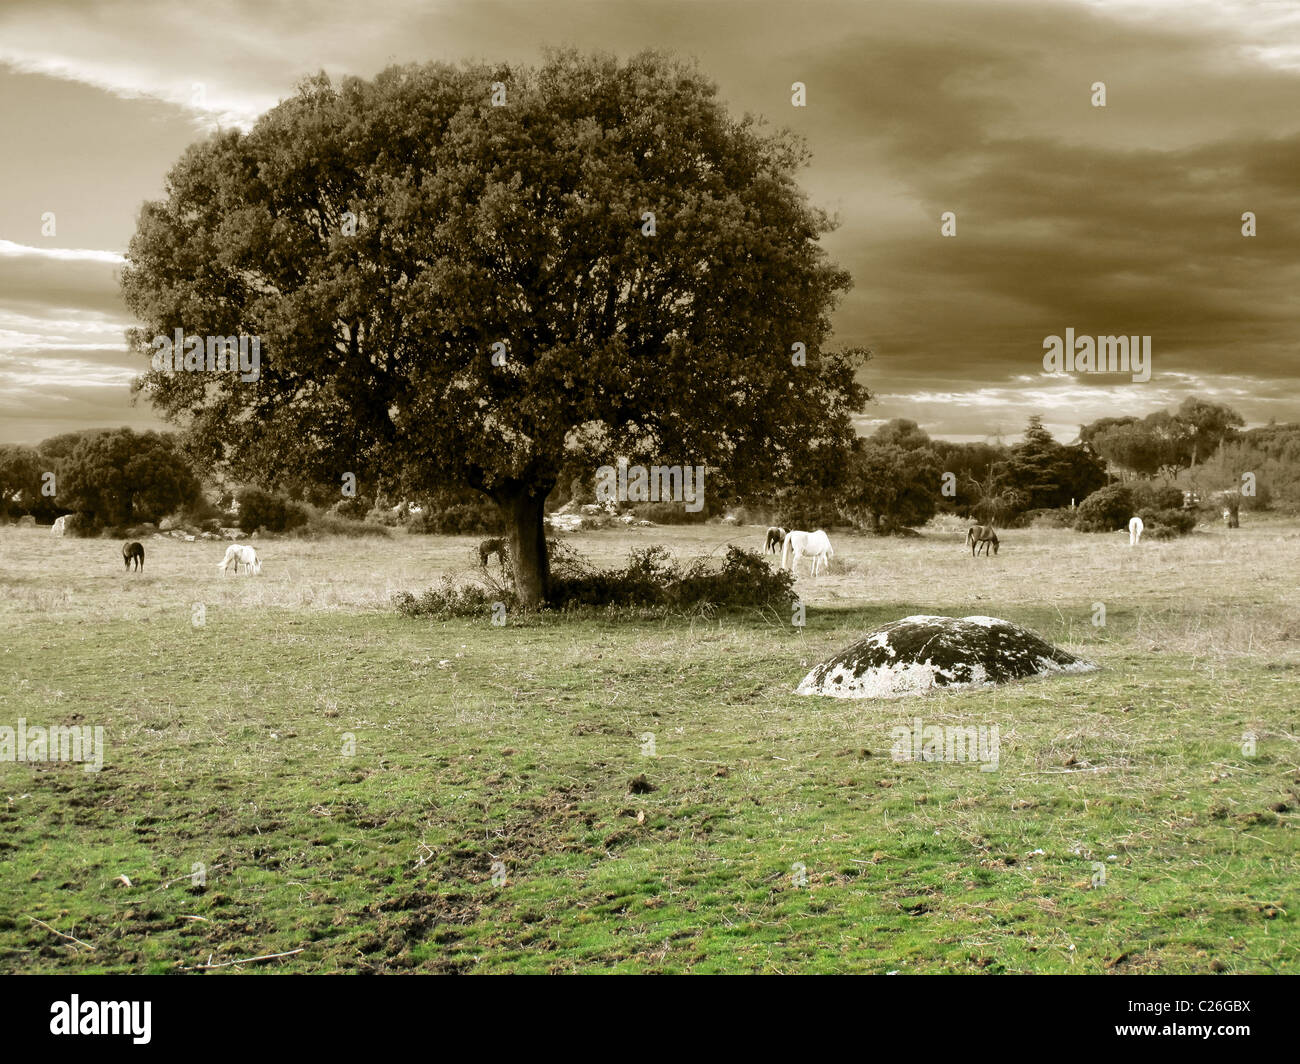 Oak and horses in gray tones - Stock Image